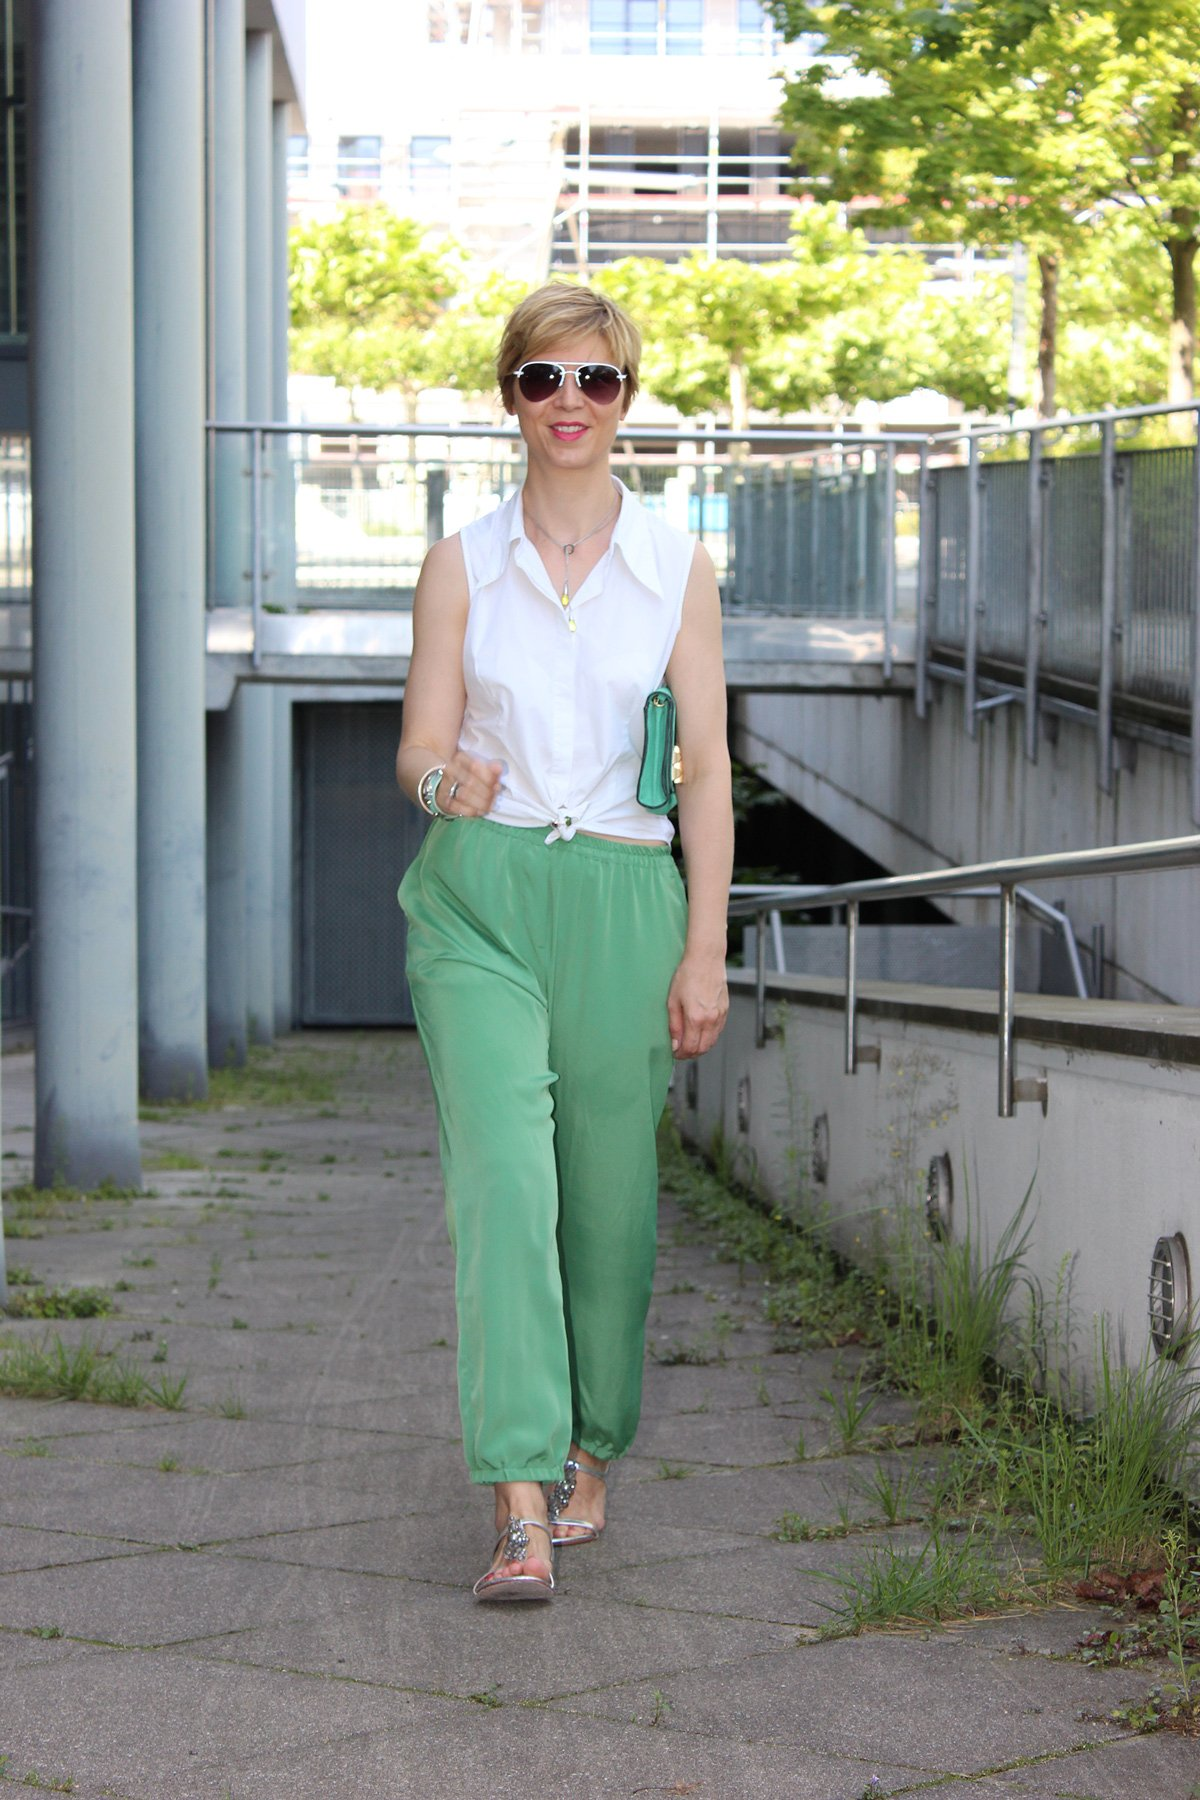 IMG_9390a_Seidenhose_Rosalia_casualSommerOutfit_weißeBluse_Sandals_Boden